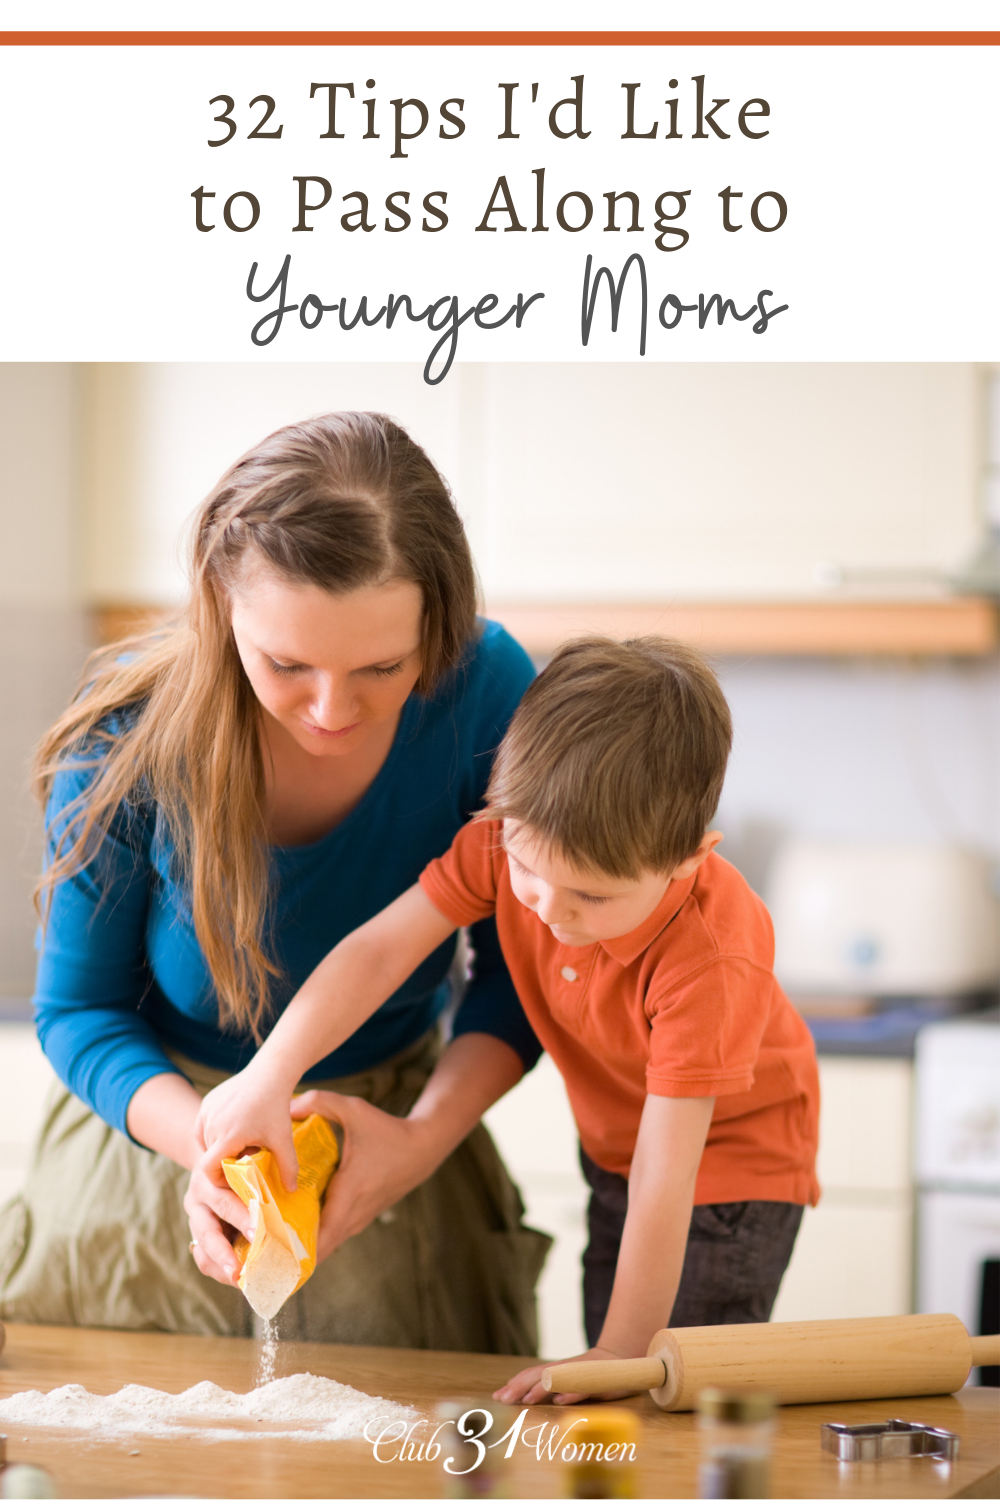 What advice would I offer a mom with little children? After two decades of parenting, here are 32 of the best tips I'd share with moms of young ones! via @Club31Women